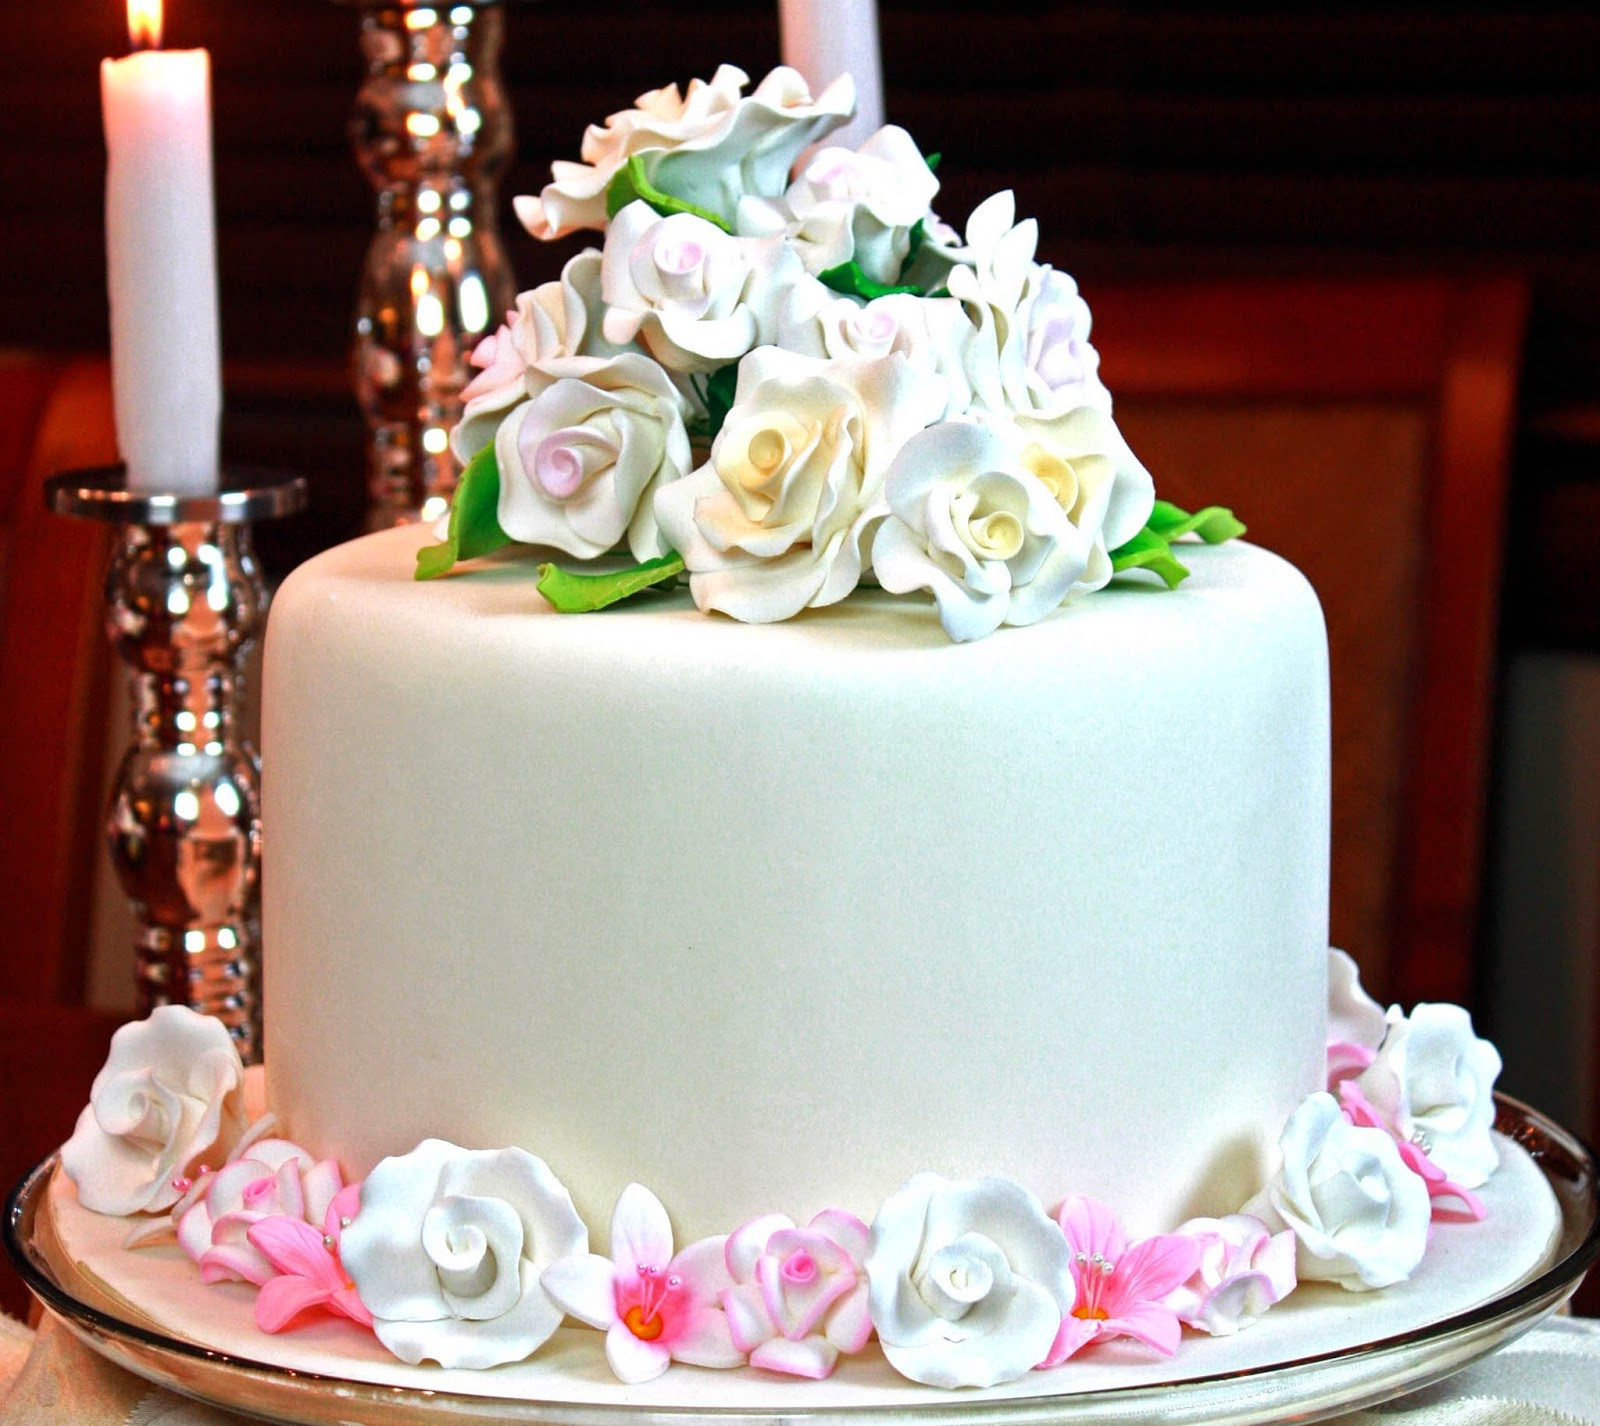 Best ideas about Birthday Cake Pics . Save or Pin Happy Birthday Cake Now.